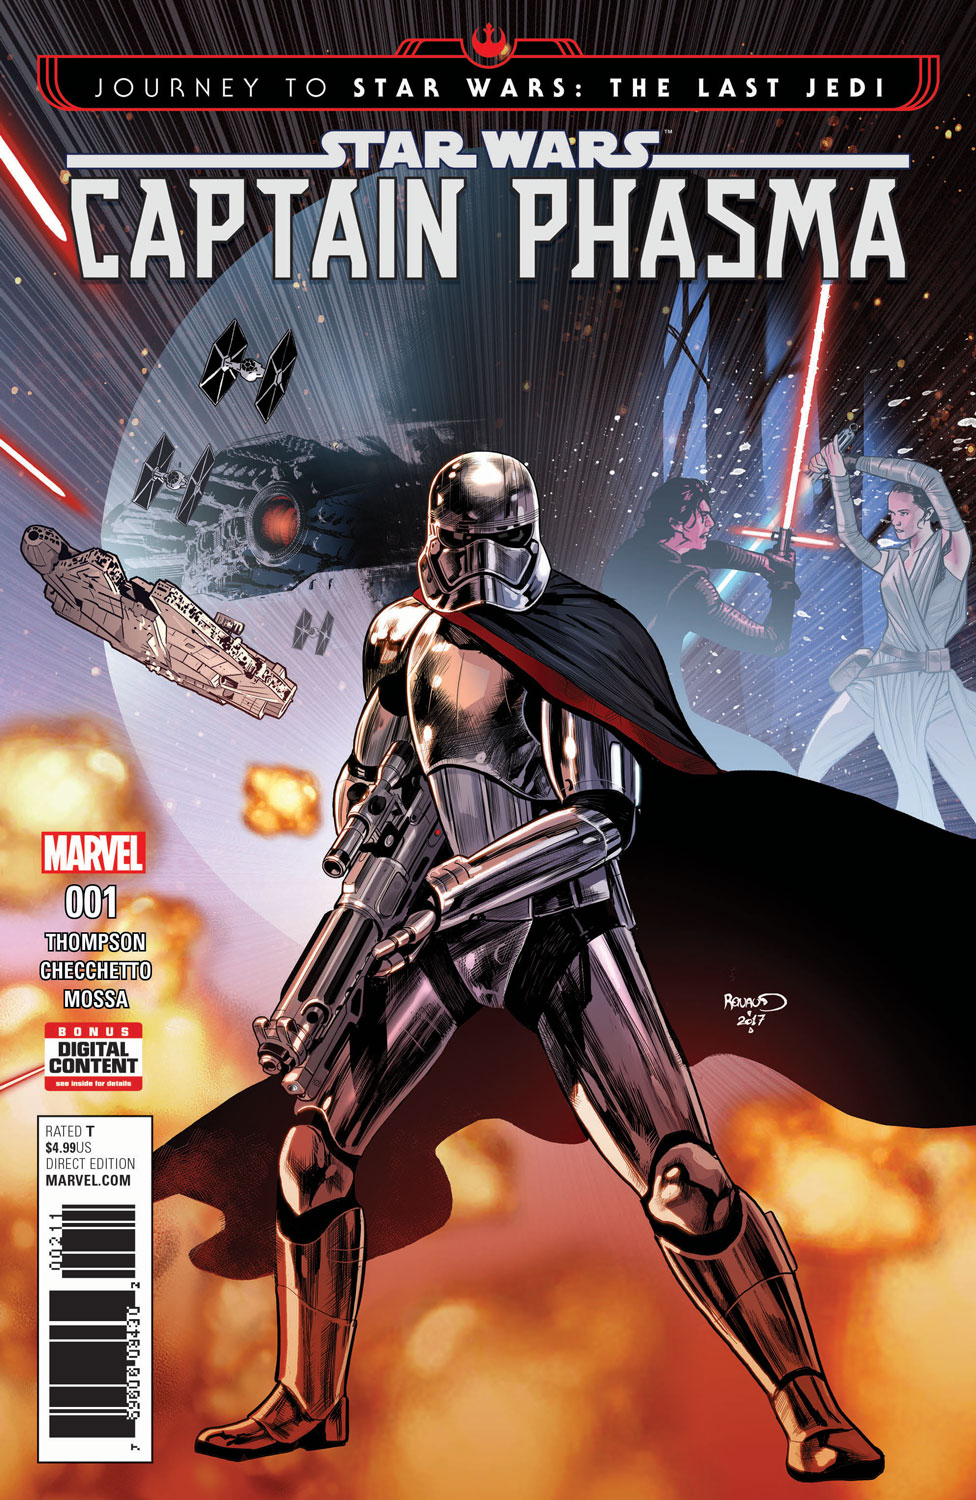 'Star Wars: Journey to Star Wars: The Last Jedi - Captain Phasma' review